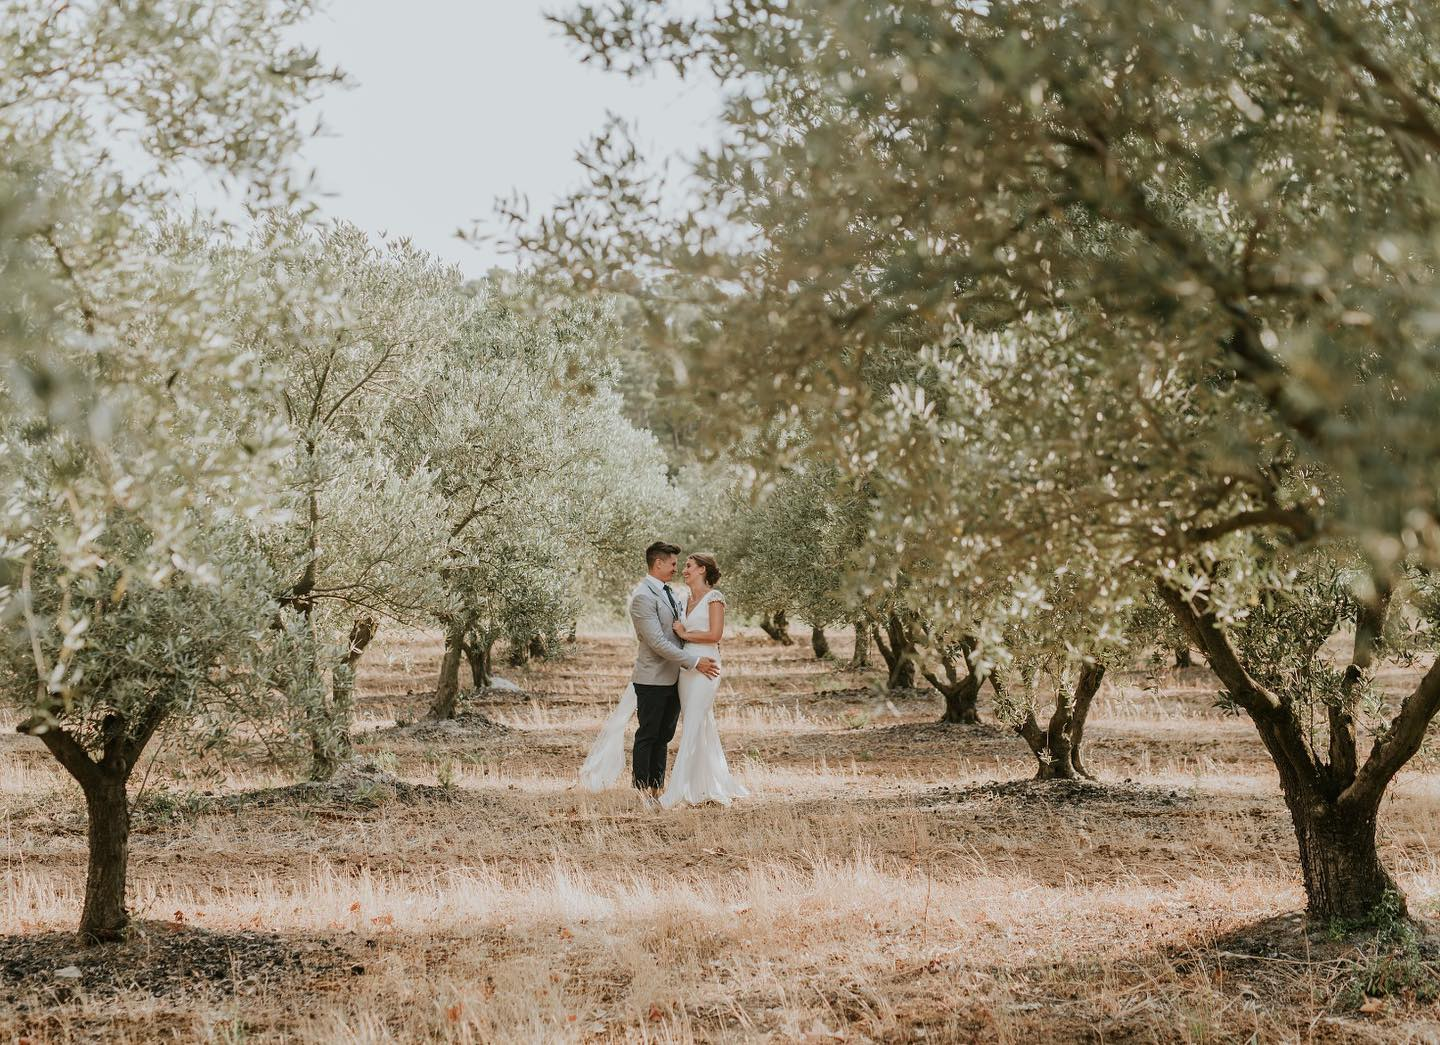 Autumn Weddings in the South of France with Rubijoy Wedding